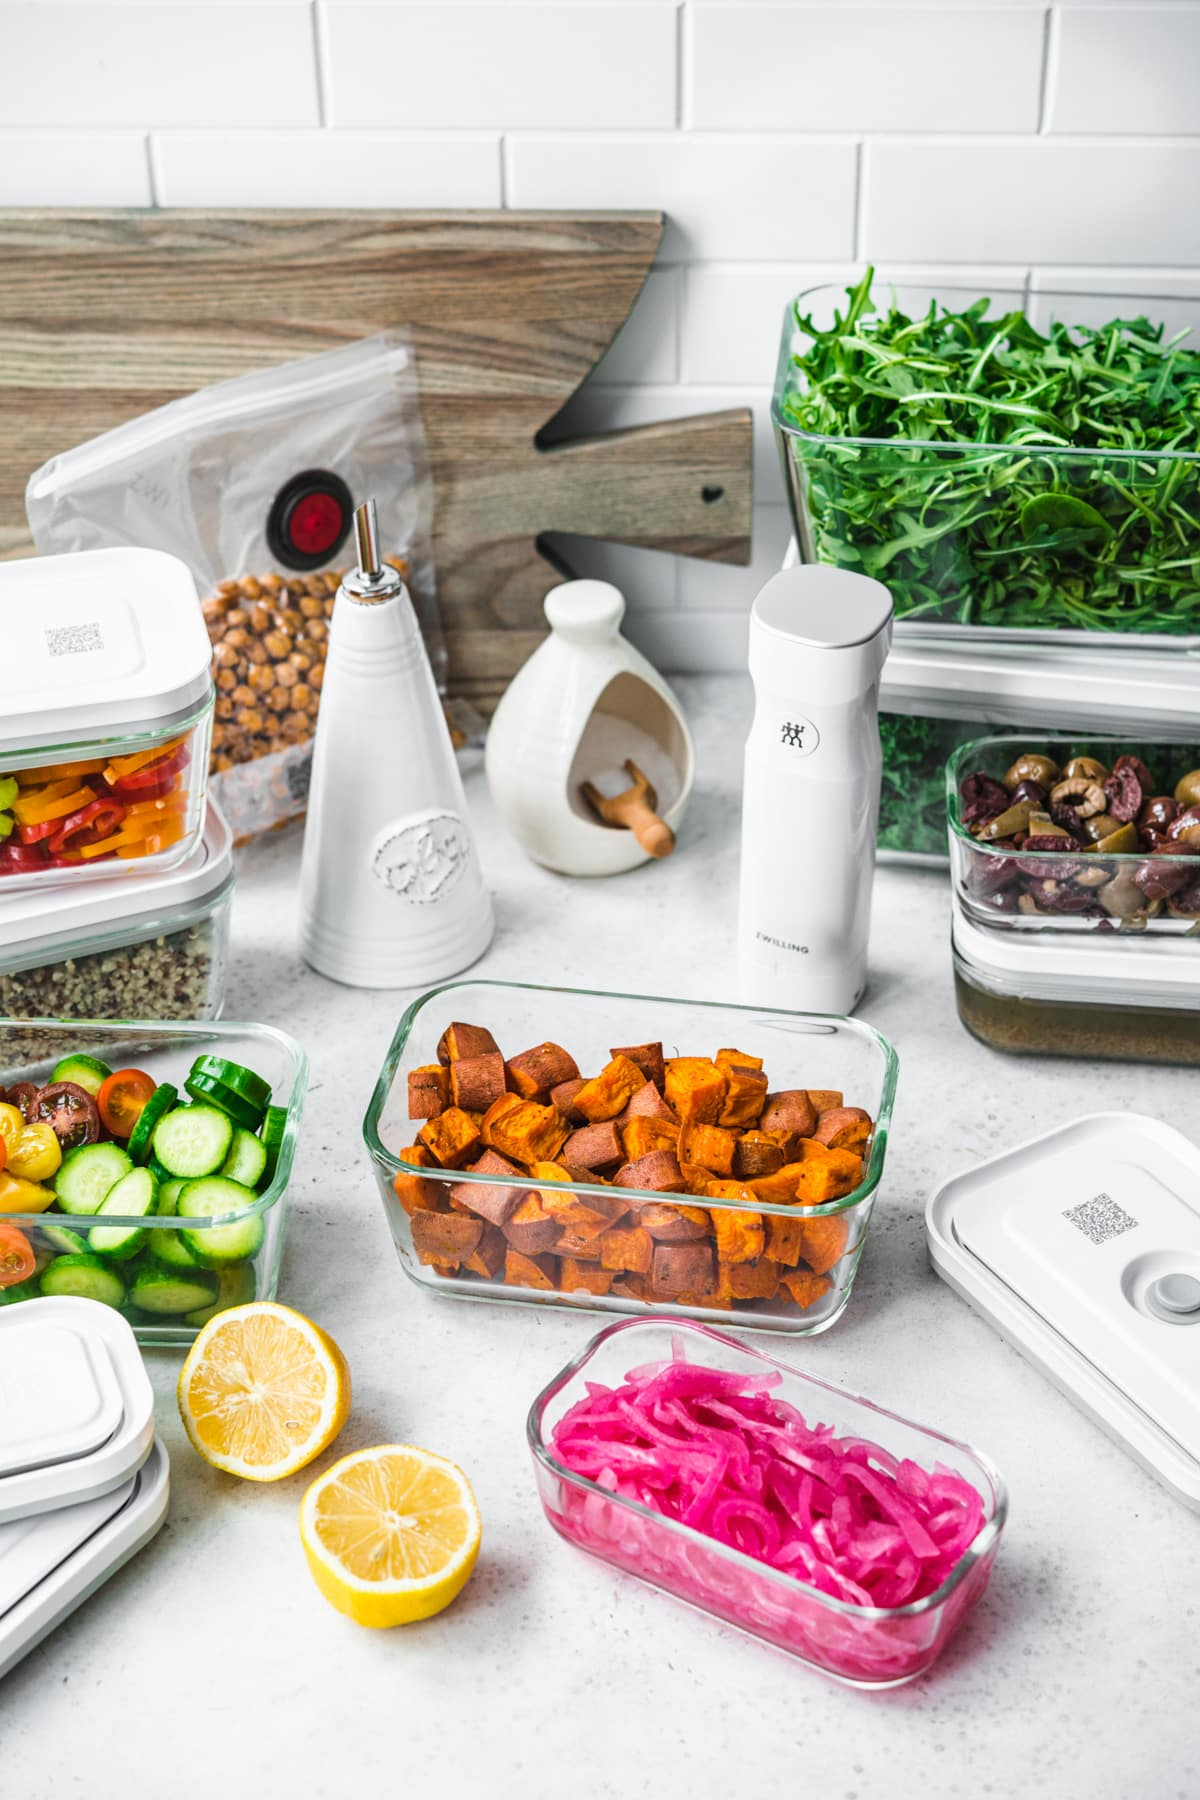 side view of several meal prep containers filled with salad ingredients, like greens, roasted sweet potato and fresh vegetables.